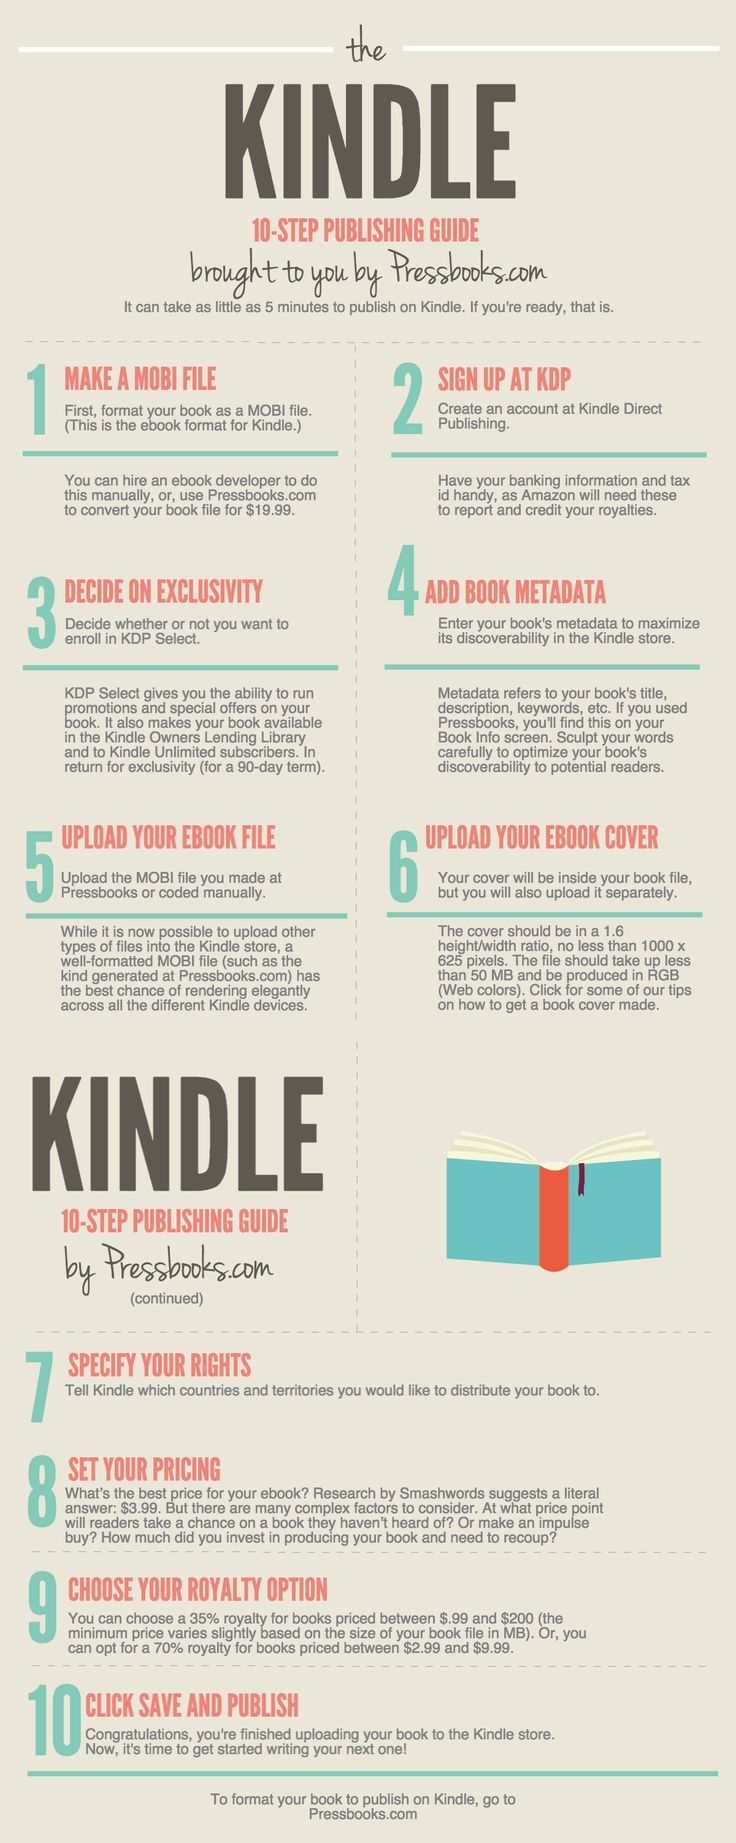 A 10-step guide to self publishing on Kindle.